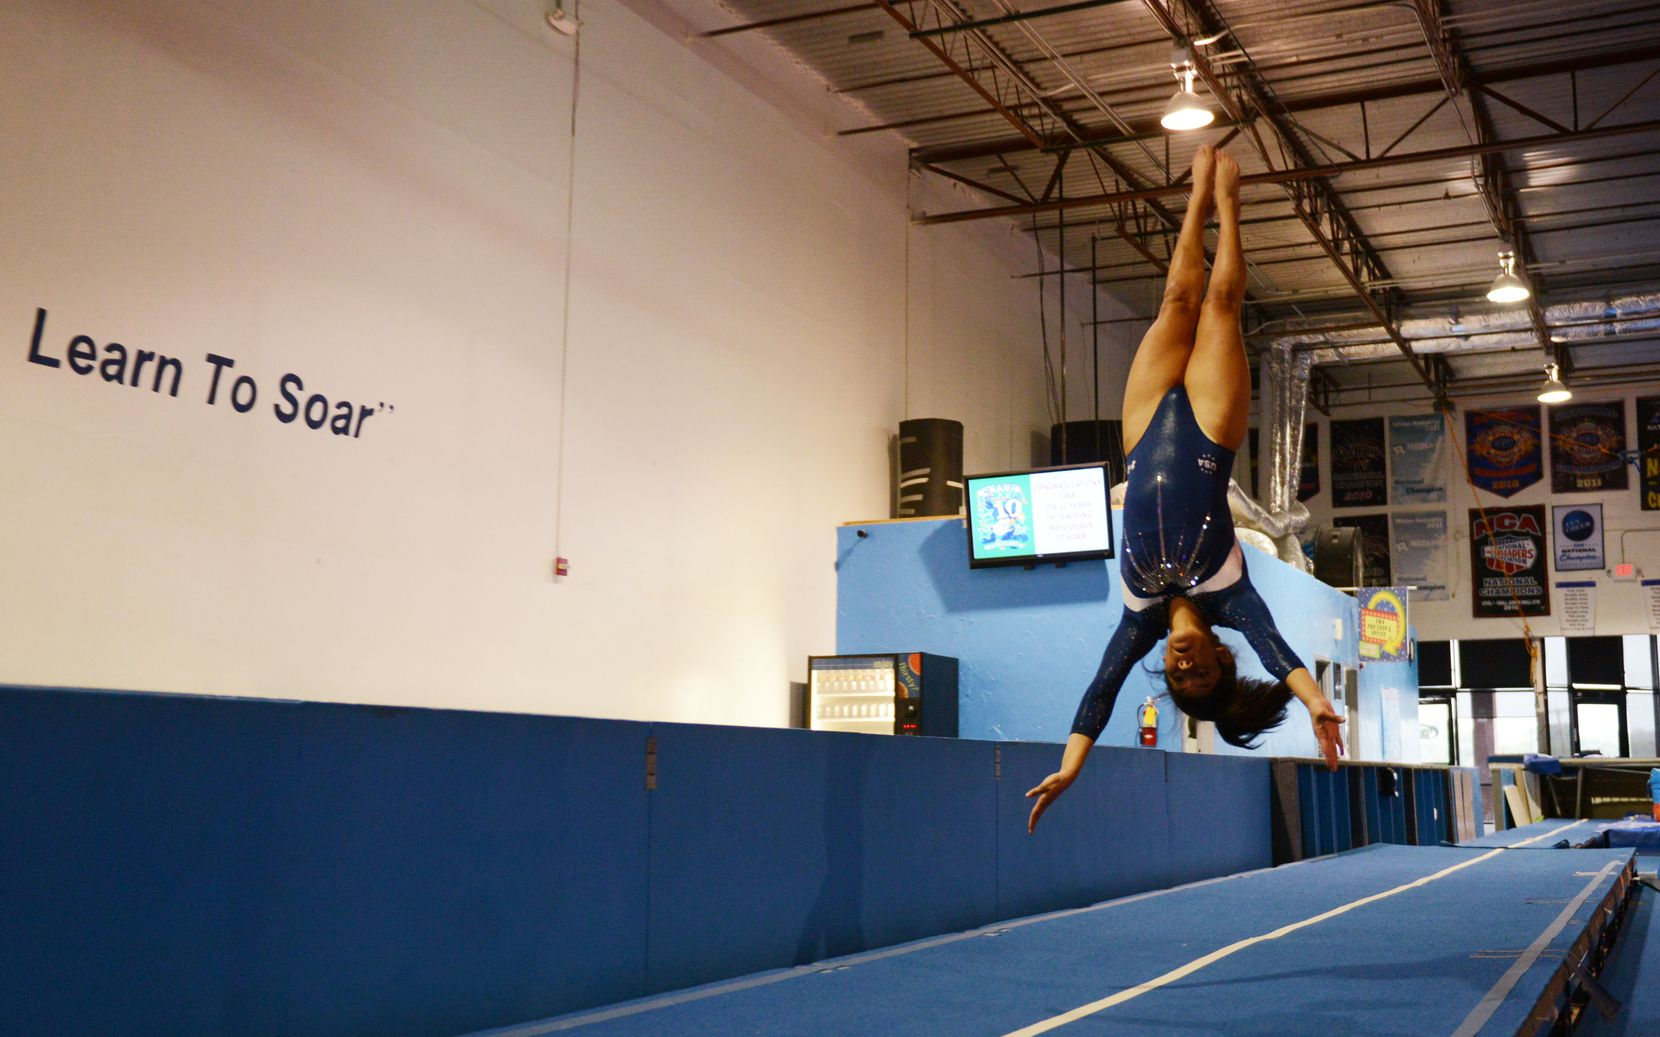 In a 2013 file photo, Hope Bravo practiced her tumbling routine at Eagle's Wings Athletics in Allen before competing in the 2013 World Trampoline and Tumbling Championships in Sofia, Bulgaria.